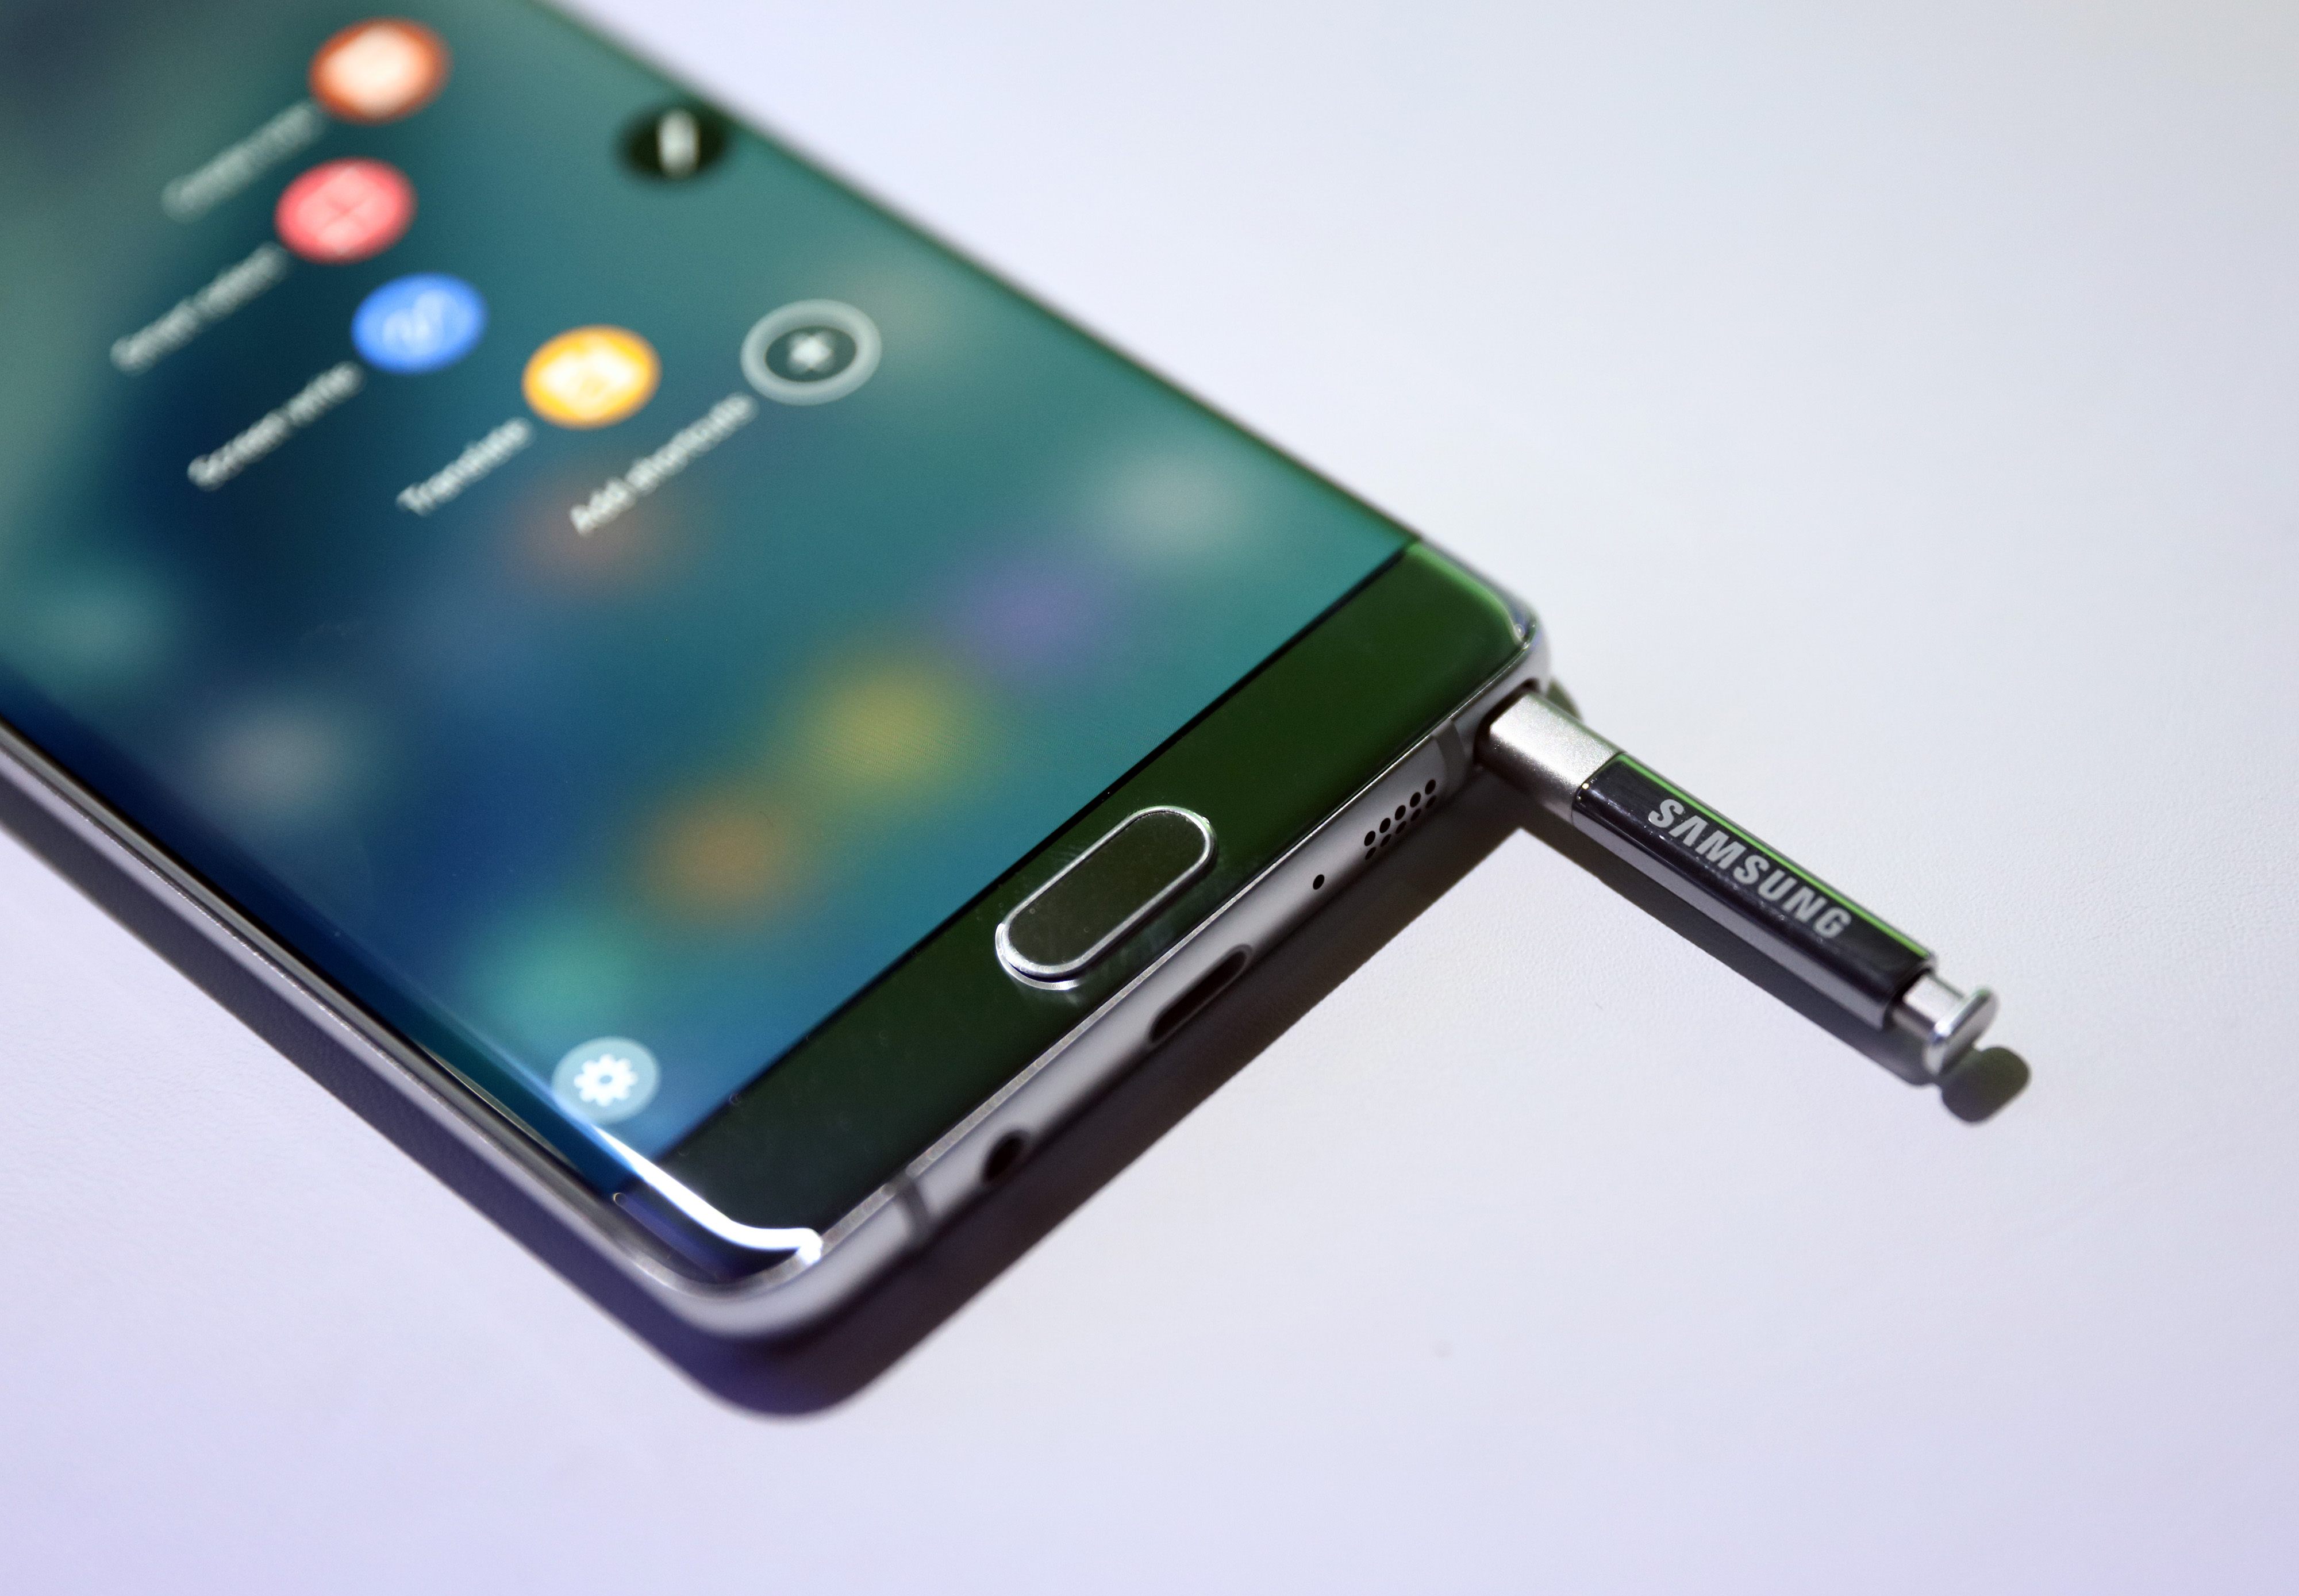 Samsung Electronics Co. Launch Their Galaxy Note 7 Smartphone